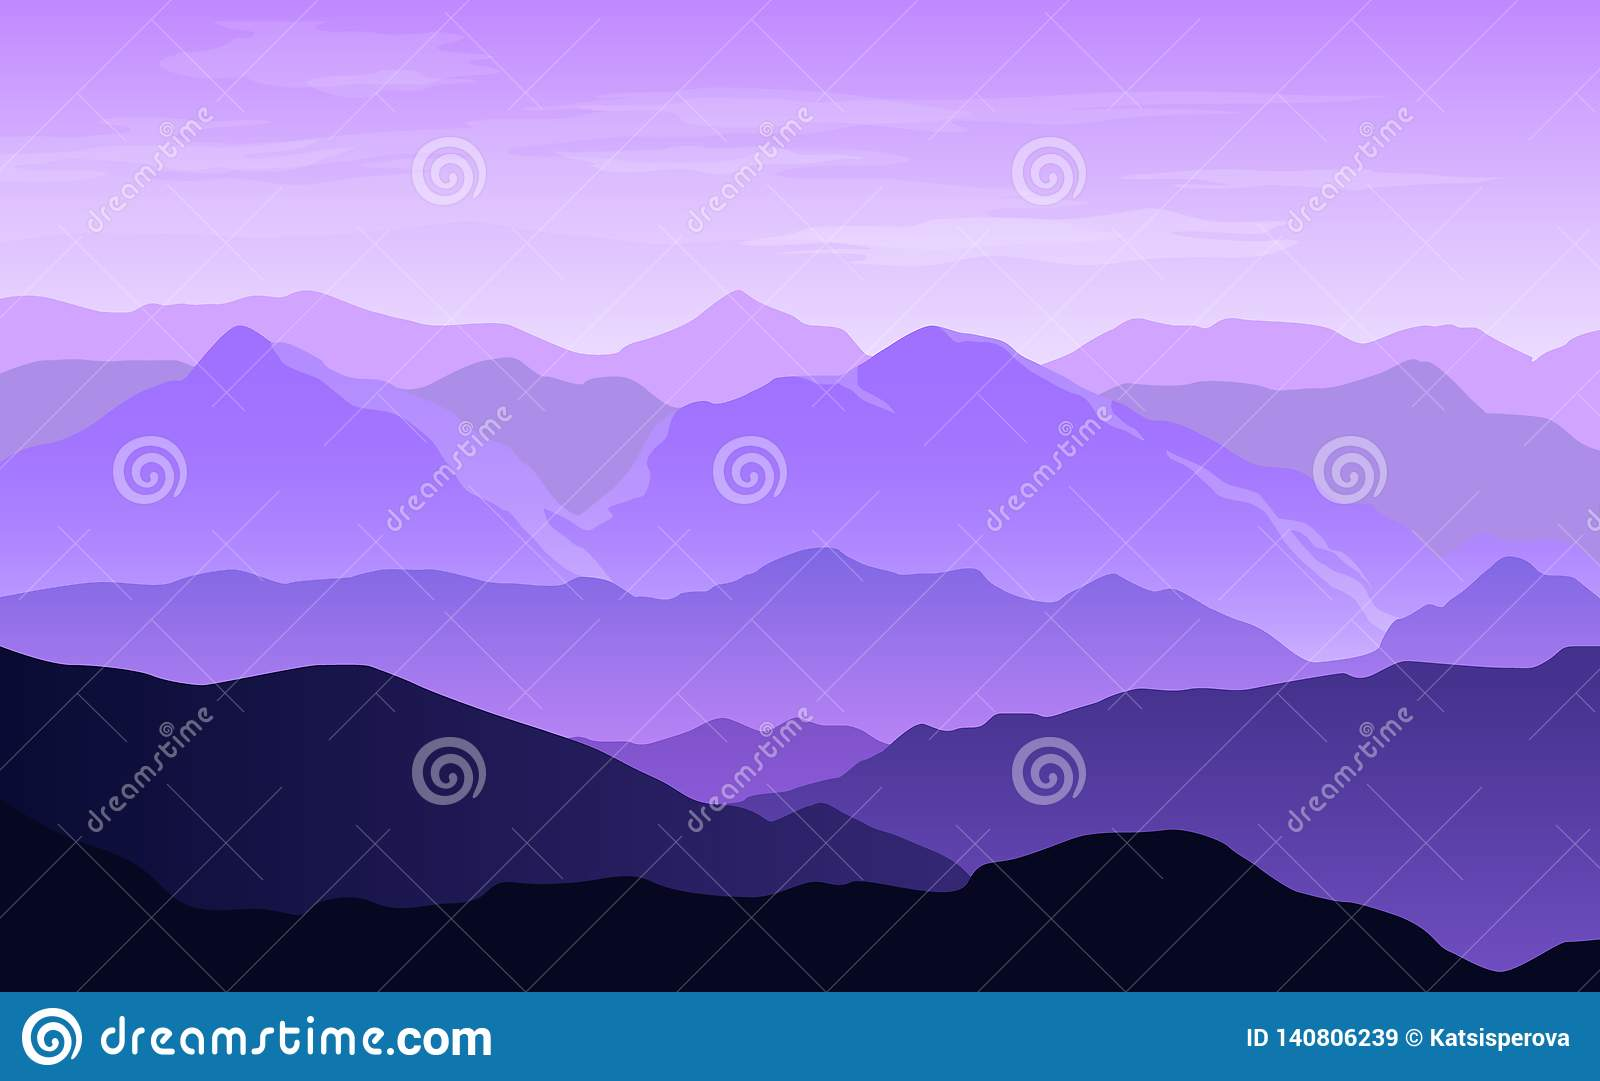 Vector panoramic landscape with purple and blue misty mountains